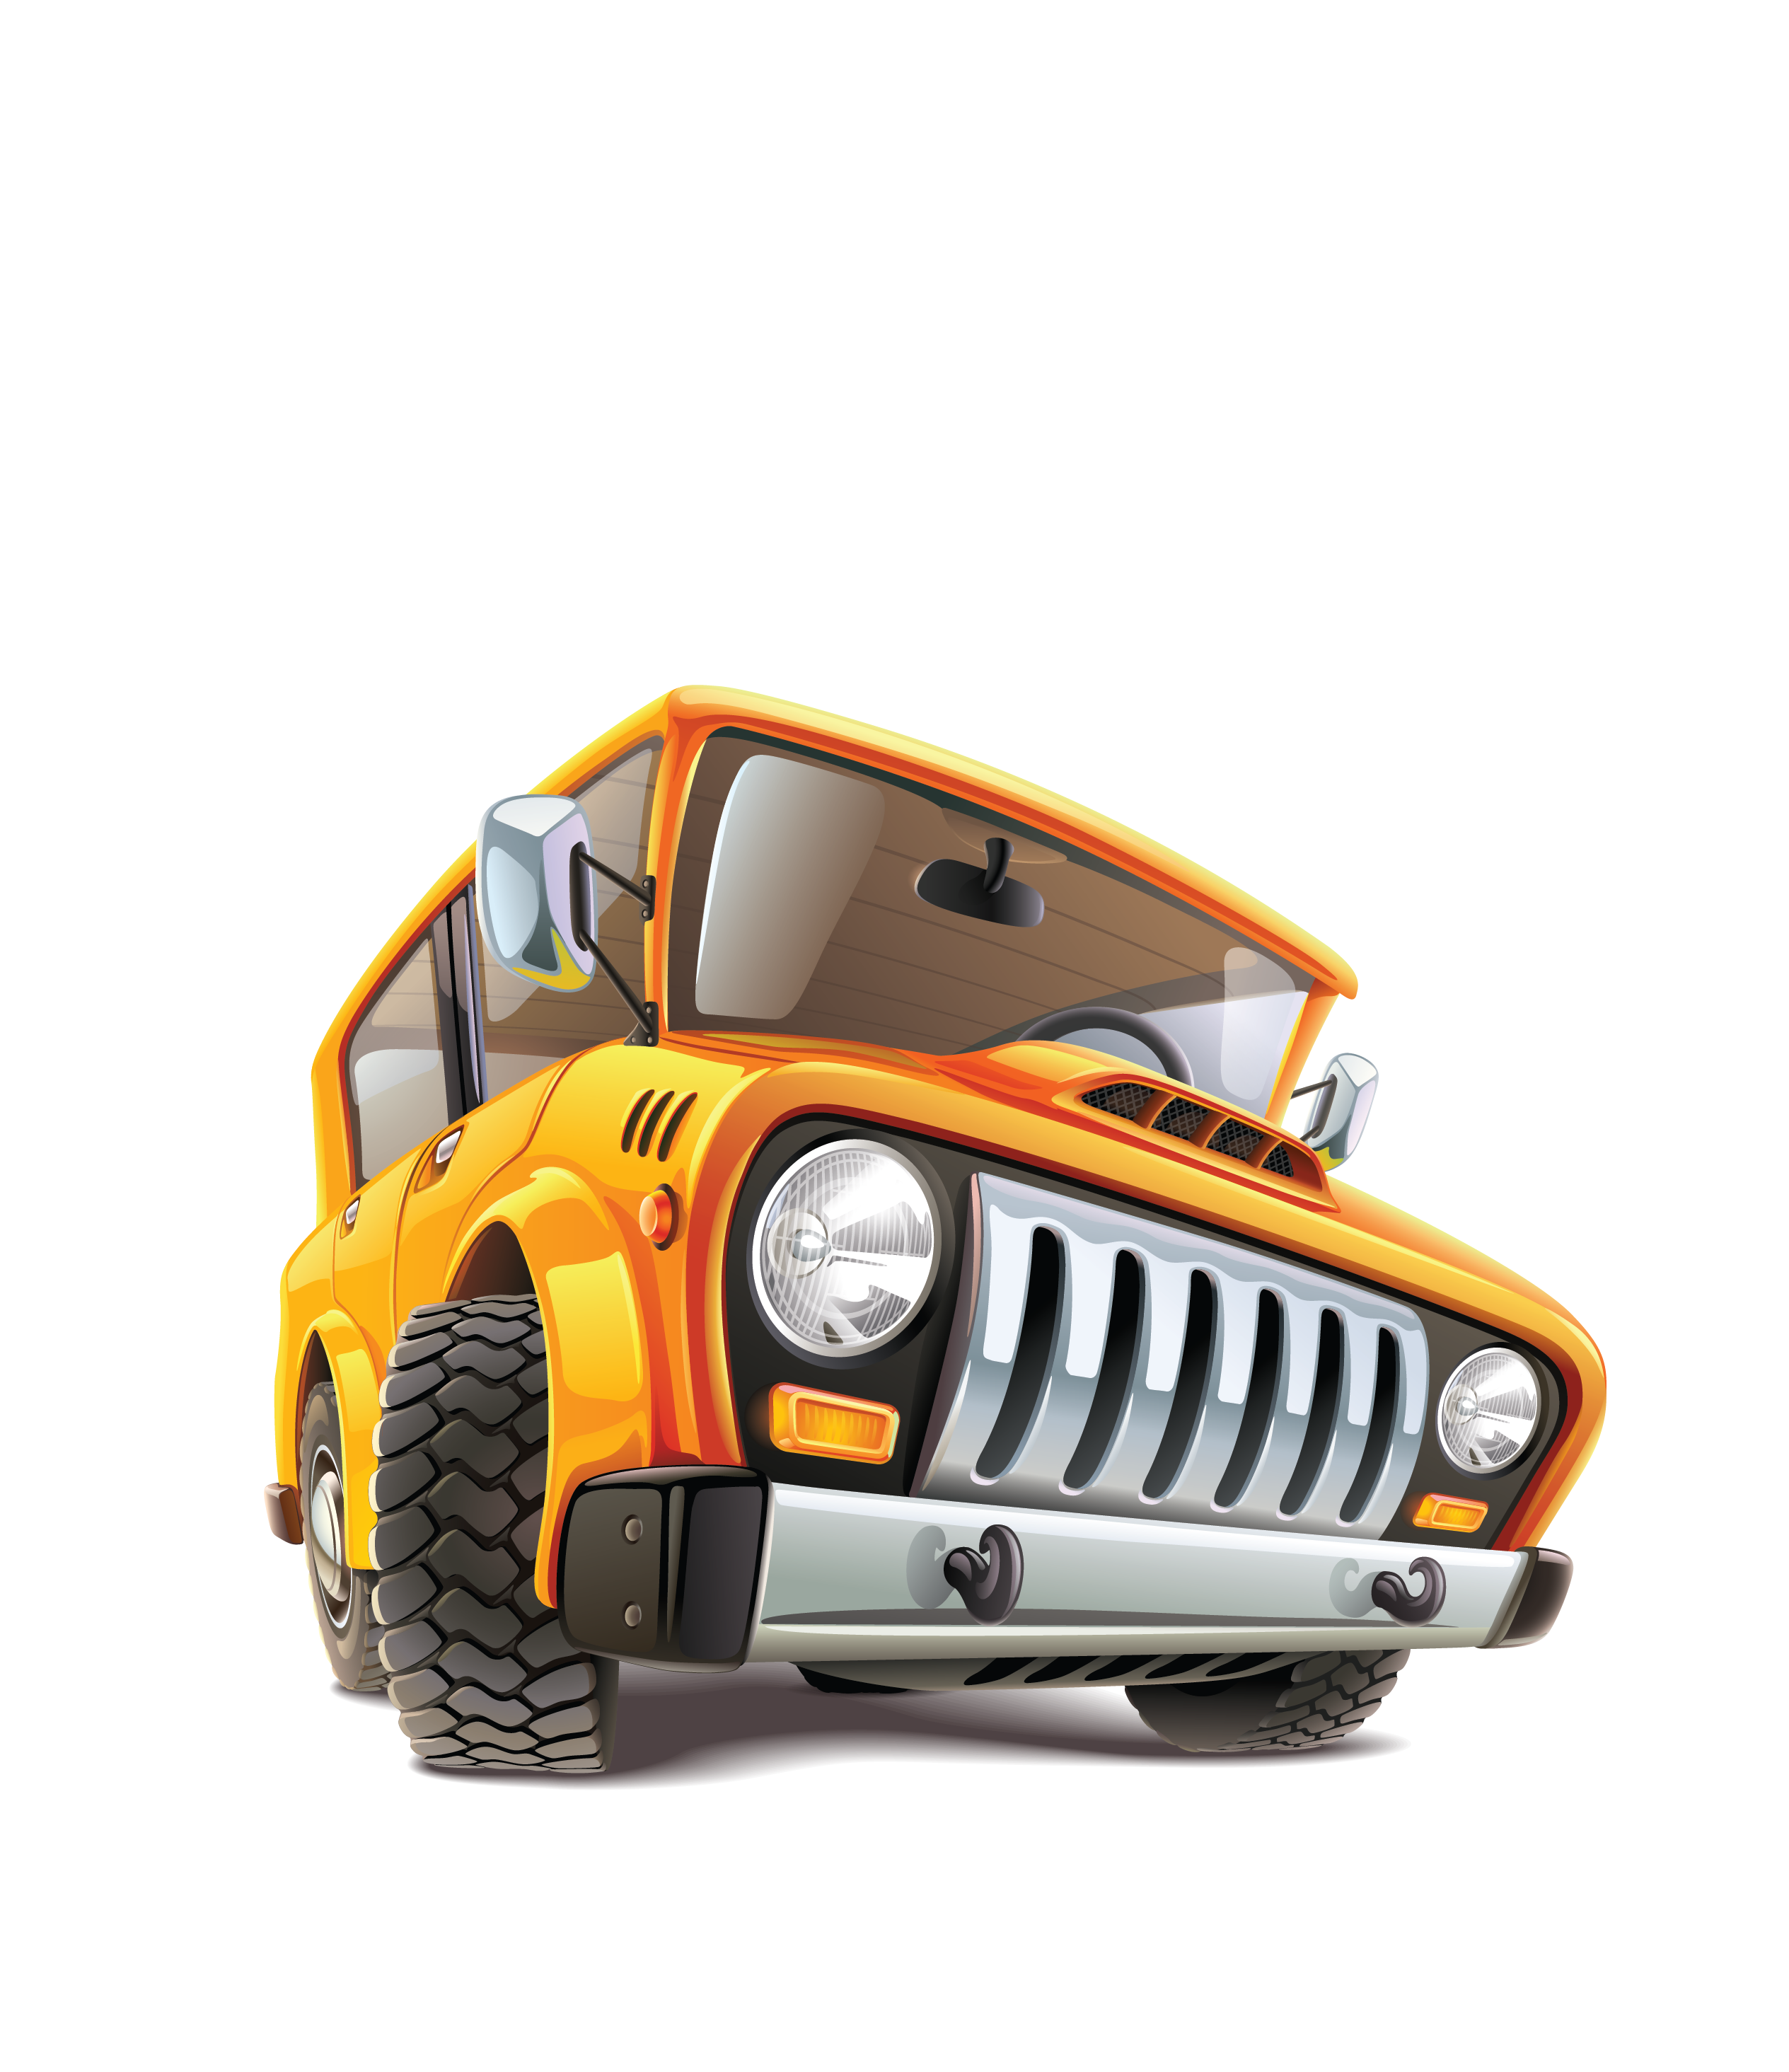 Cartoon jeep png. Car icon vector transprent